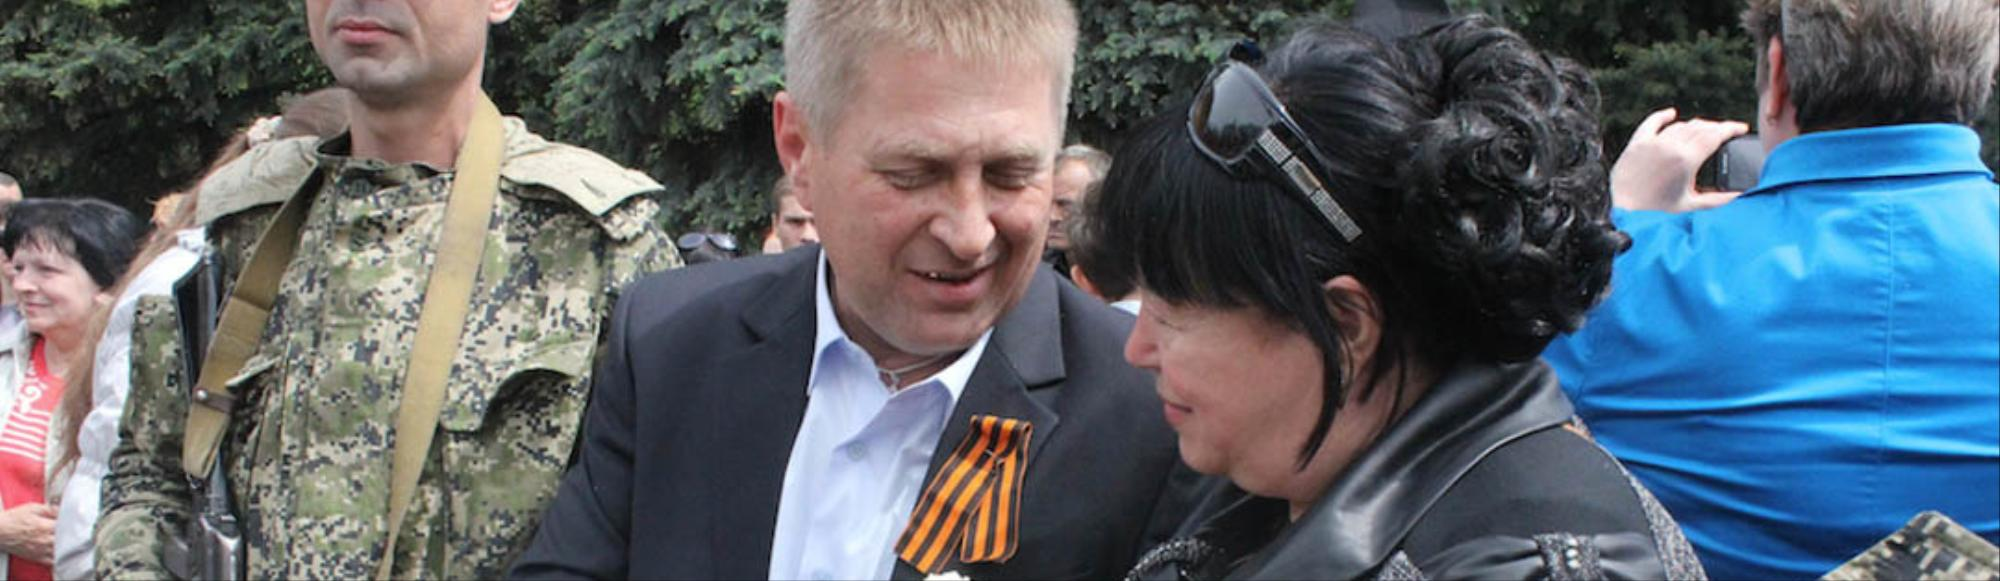 Sloviansk's 'People's Mayor' Rumored to Be Detained By Own Forces in Ukraine